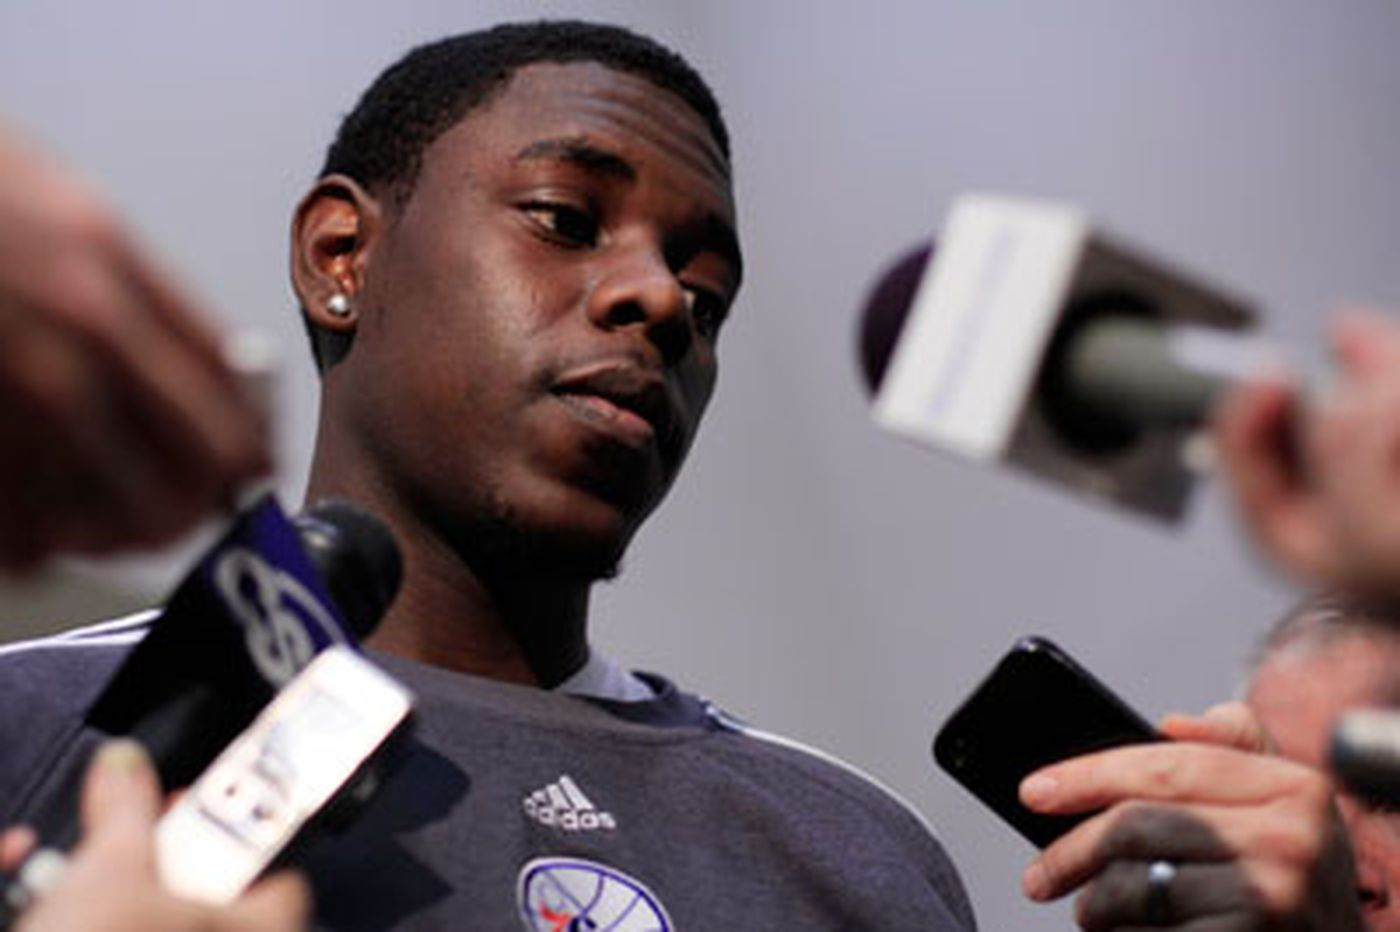 Sixers' Jrue Holiday sets all-star goals